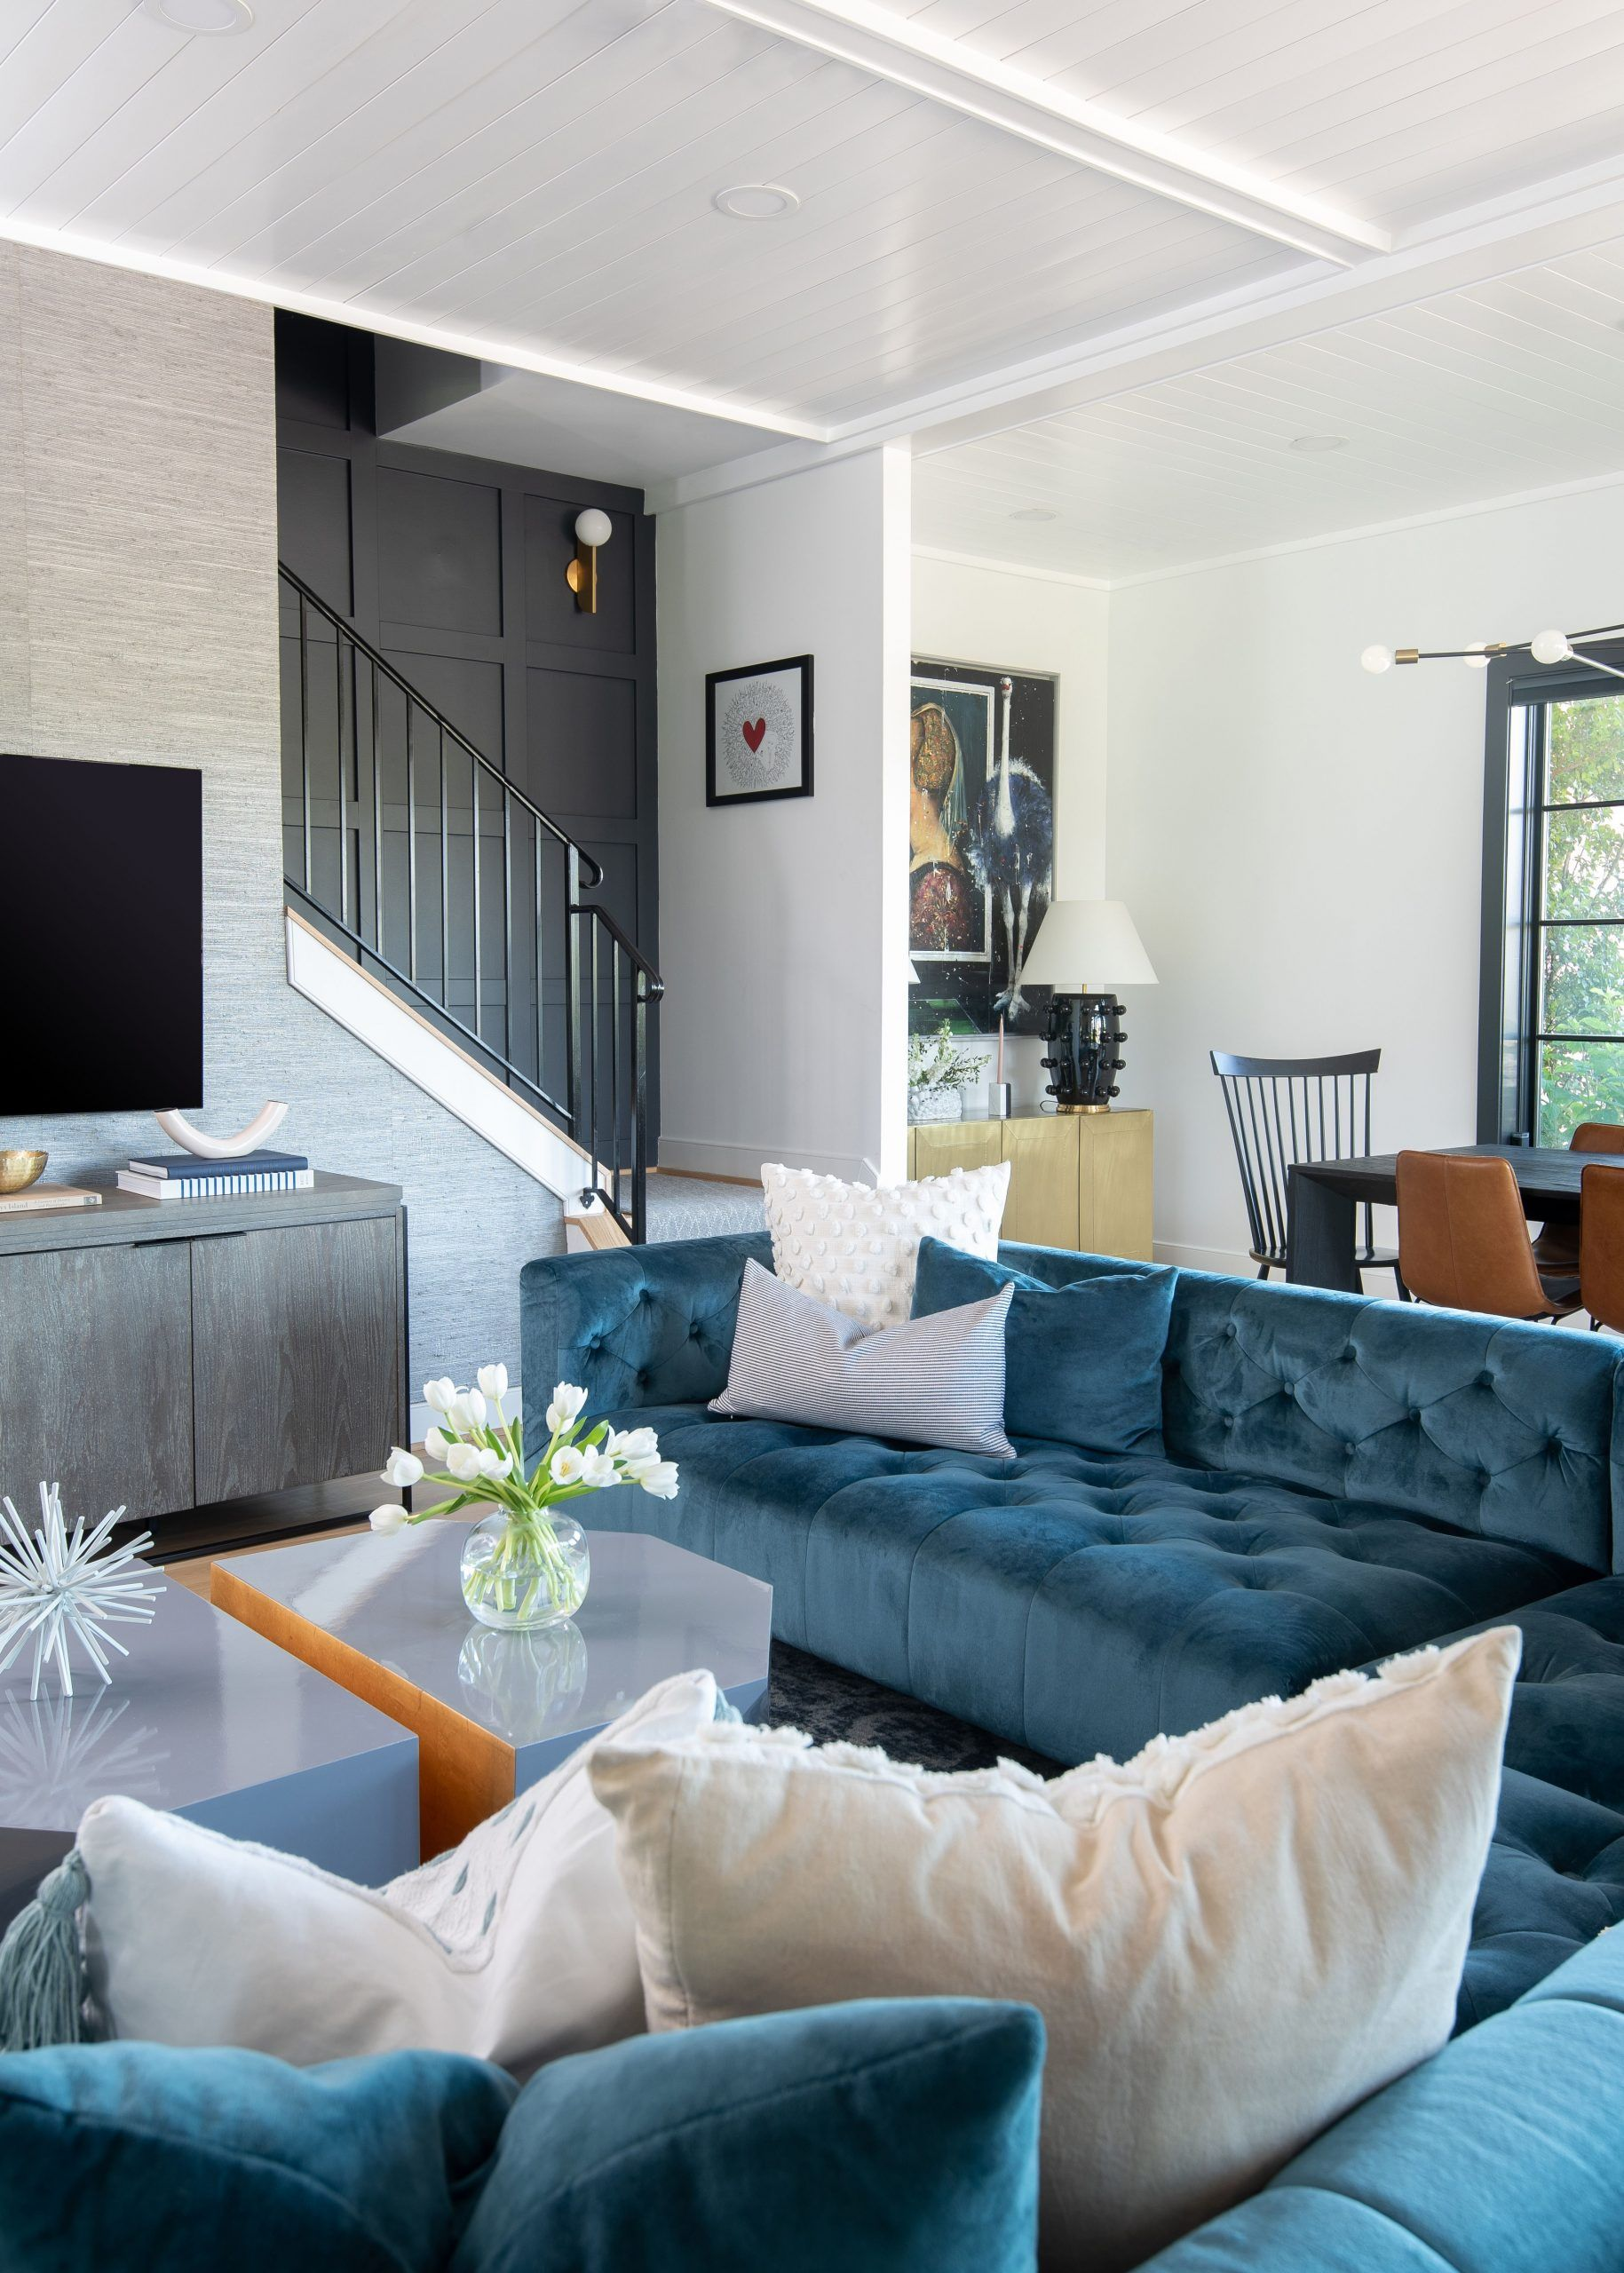 6 Living Room Layout Ideas That Always Work No Matter Your Square Footage  Hunkerfootage